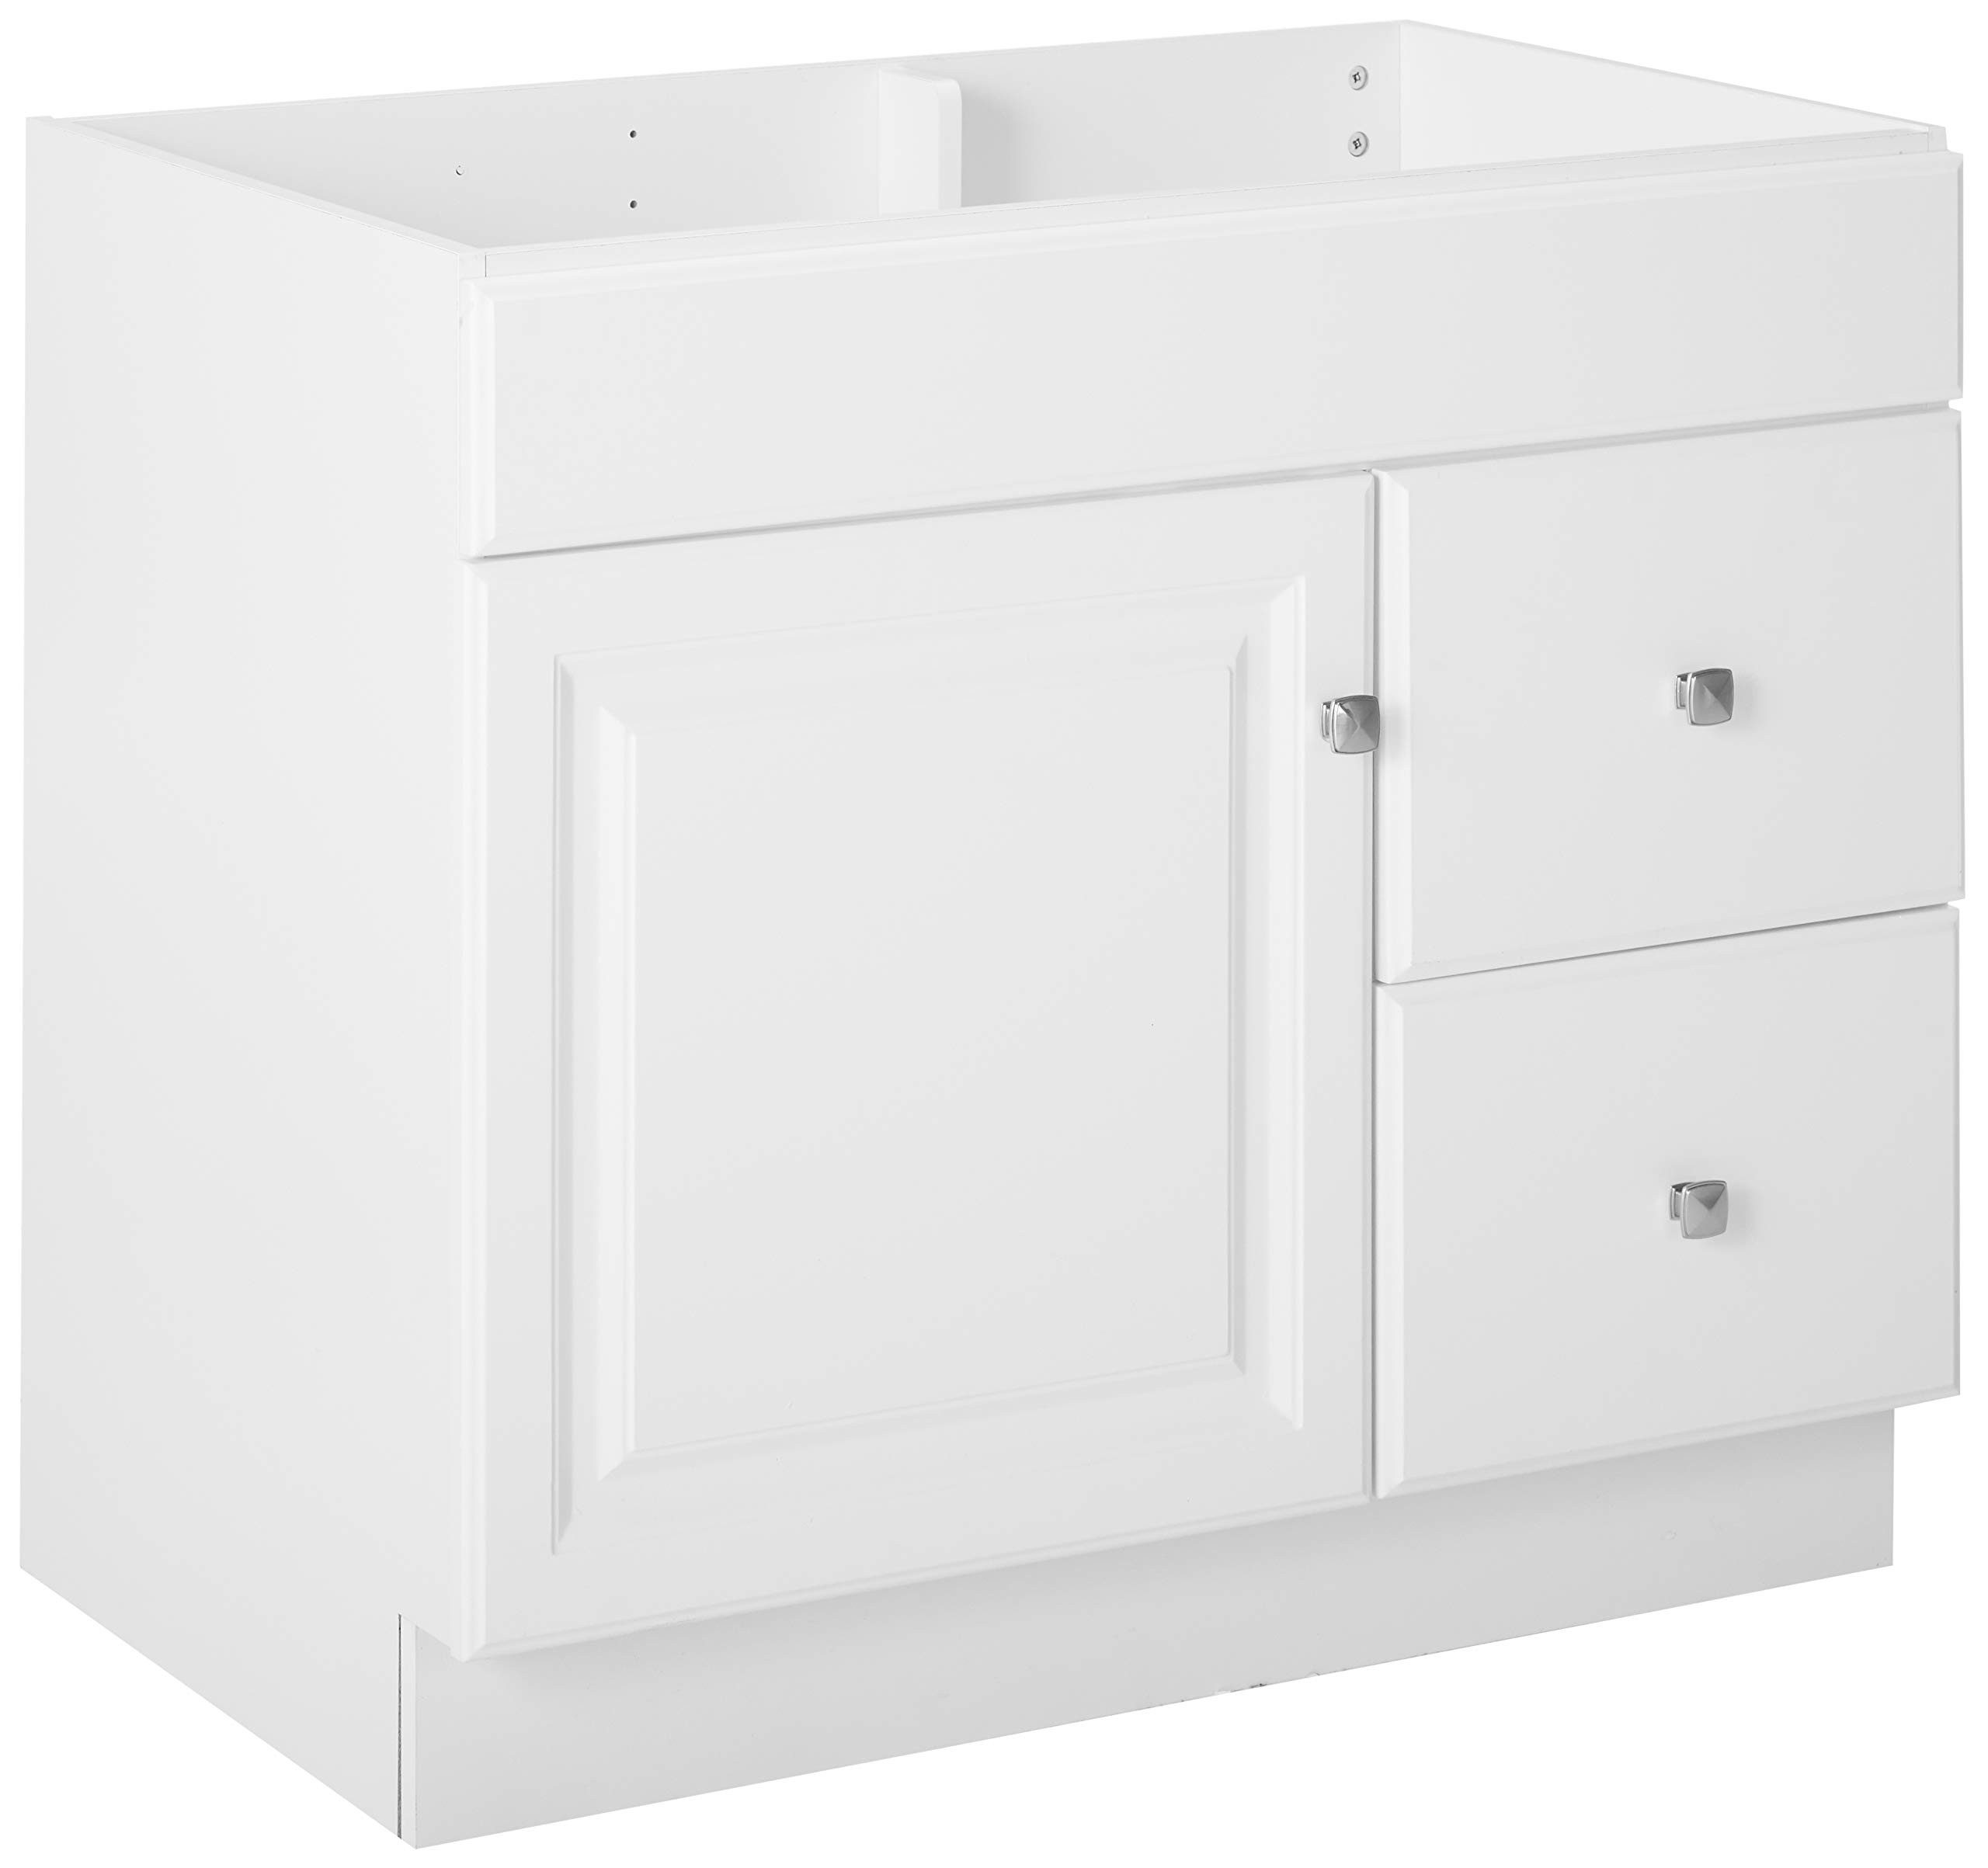 """Design House 531954 Wyndham Ready-To-Assemble 1 Door/2 Drawer Vanity, White, 36""""W x 31.5""""T 21""""D, Cabinet Only - Cabinet only. Top sold separate. 2-drawer construction gives you plenty of storage for toiletries Measures 36-inches wide by 31.5-inches tall by 21-inches deep - bathroom-vanities, bathroom-fixtures-hardware, bathroom - 71BBUmZHyPL -"""